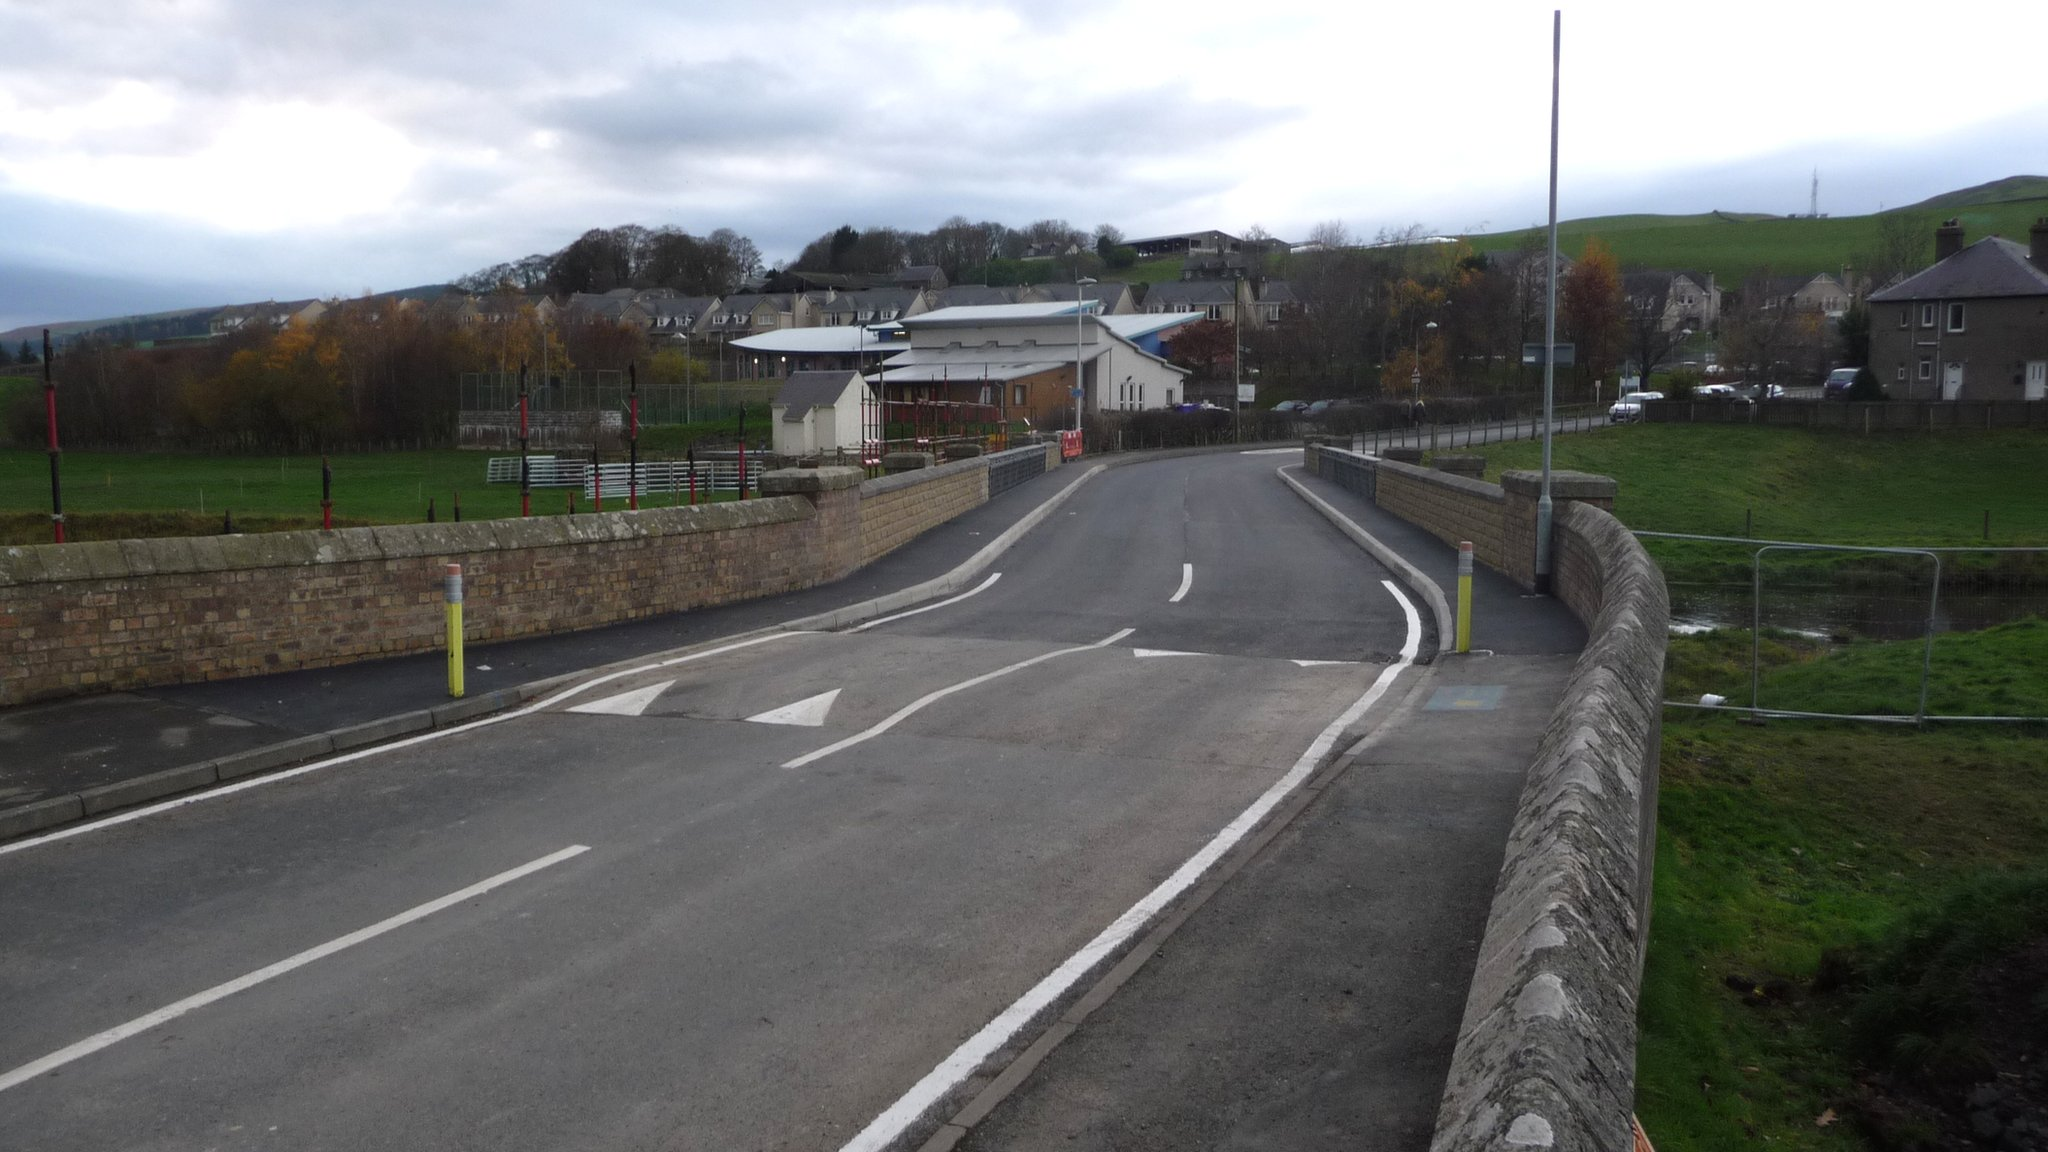 Stow railway station bridge overhaul completed